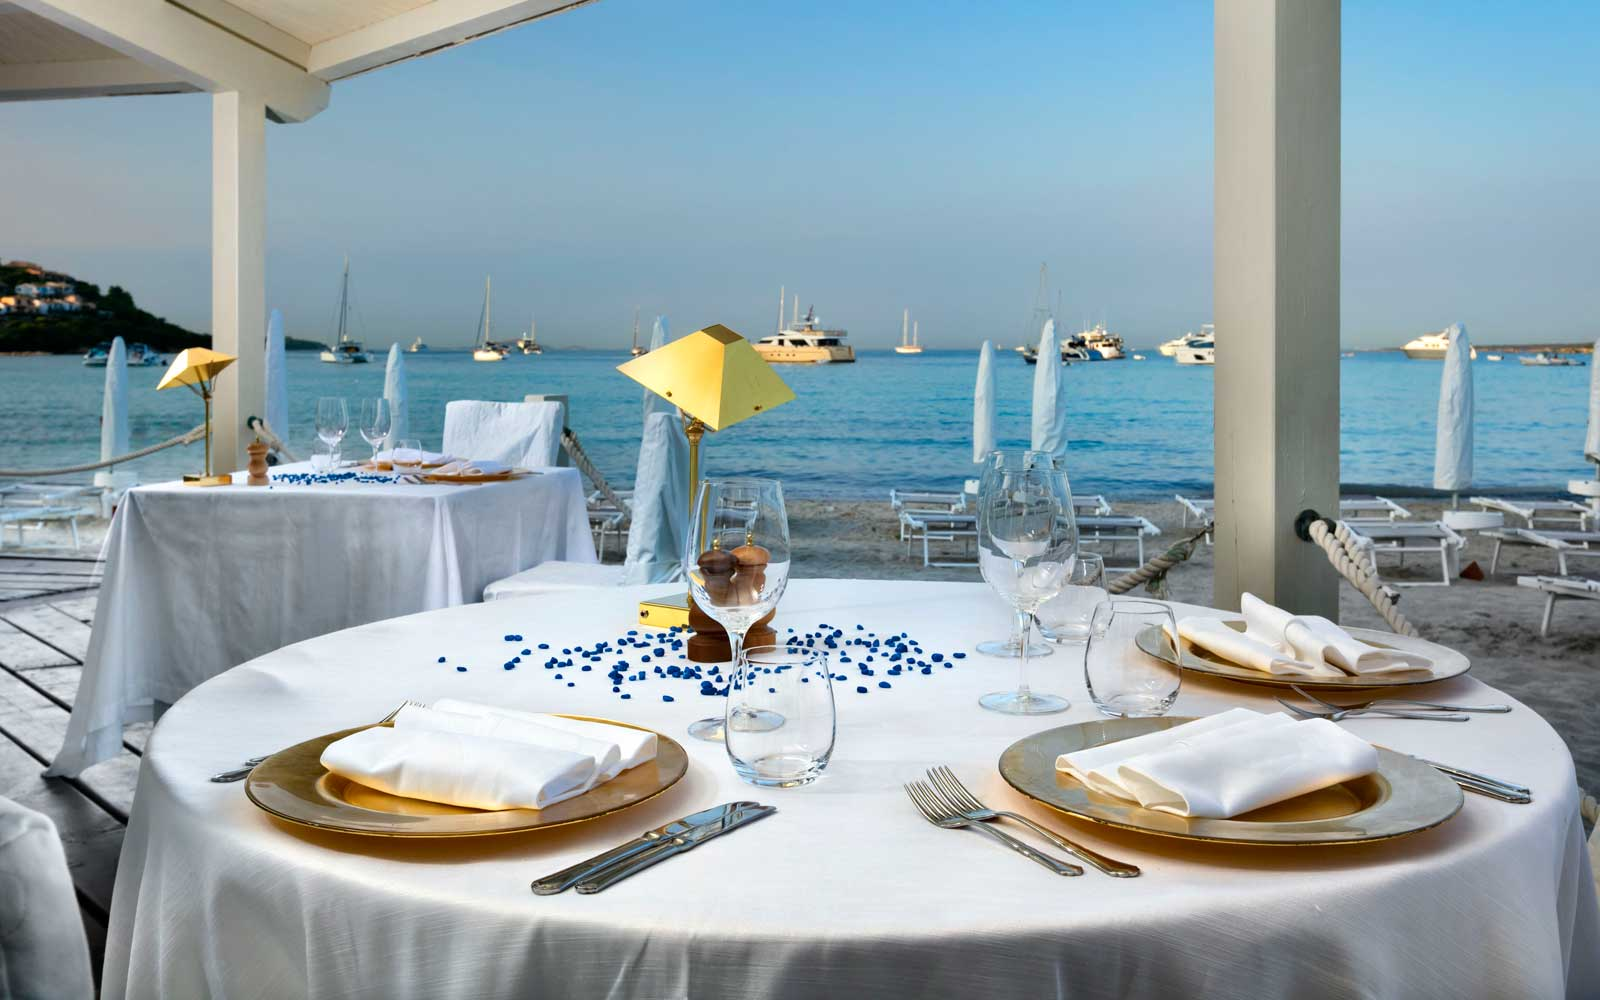 Marinella Restaurant at Hotel Abi D'oru